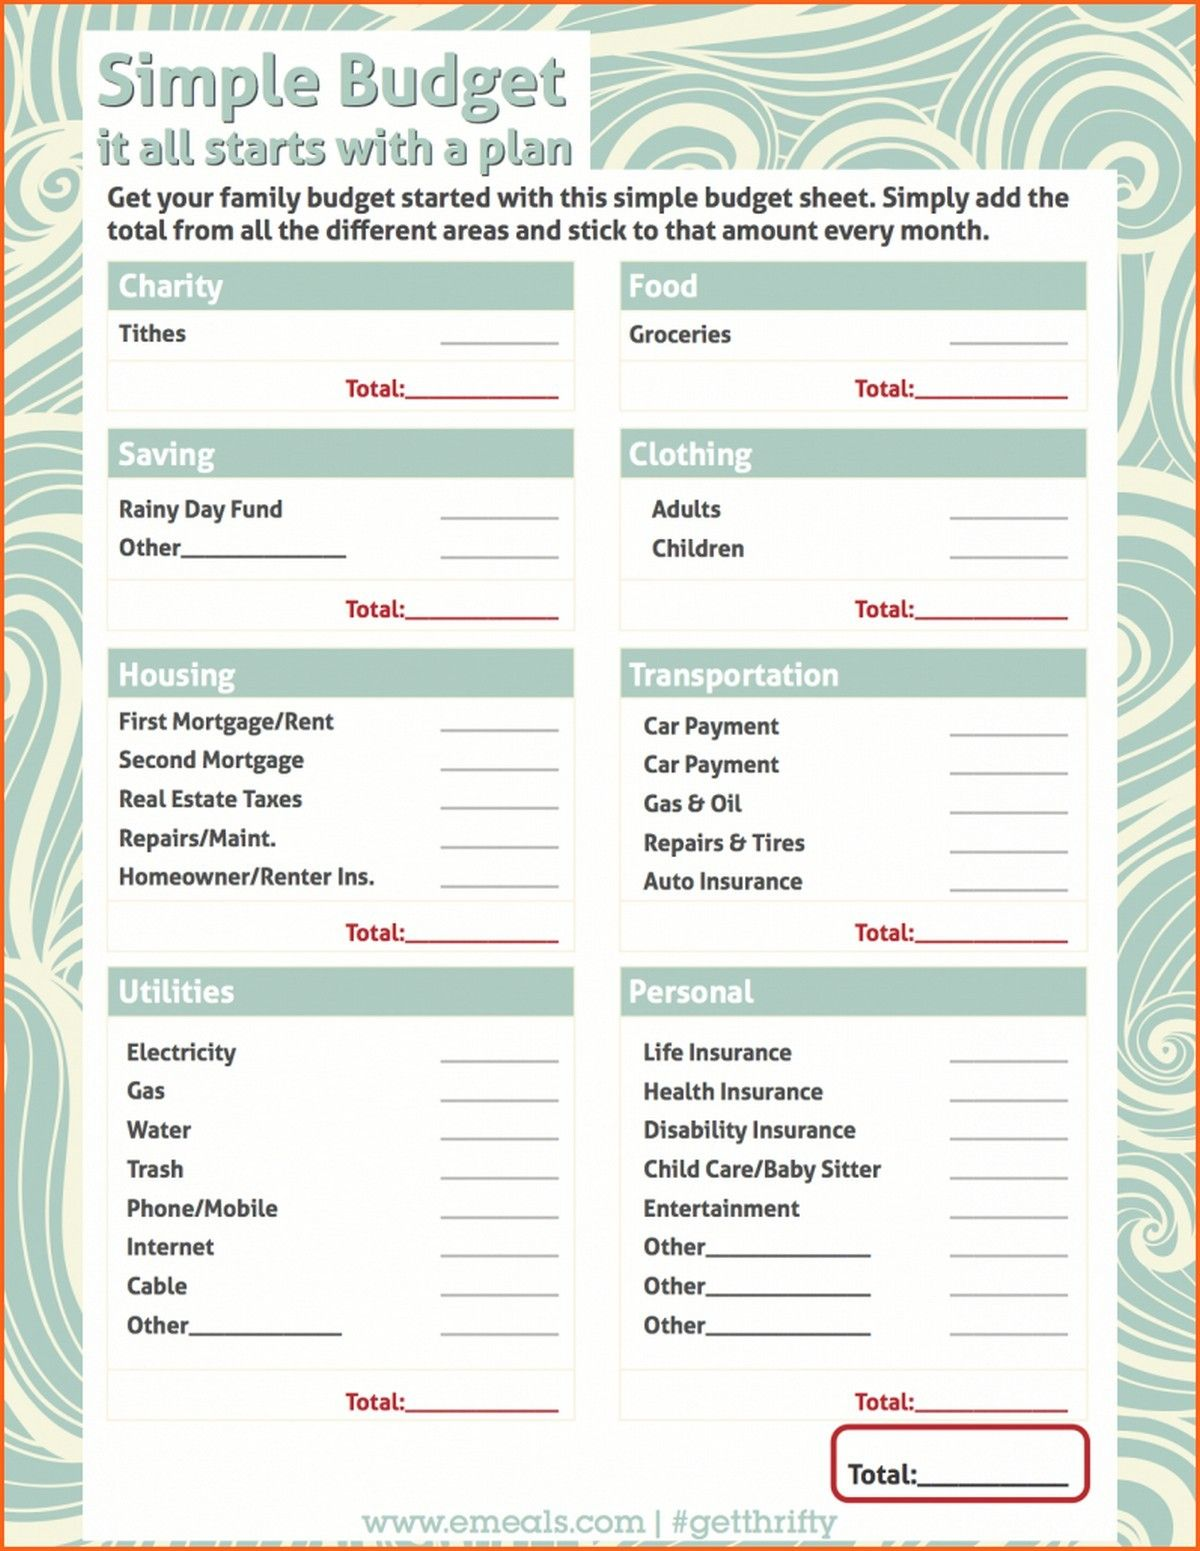 Zero Based Budget Template Dave Ramsey Five Fantastic Vacation Ideas For Zero Based Bud Simple Budget Worksheet Budgeting Worksheets Budgeting Worksheets Free